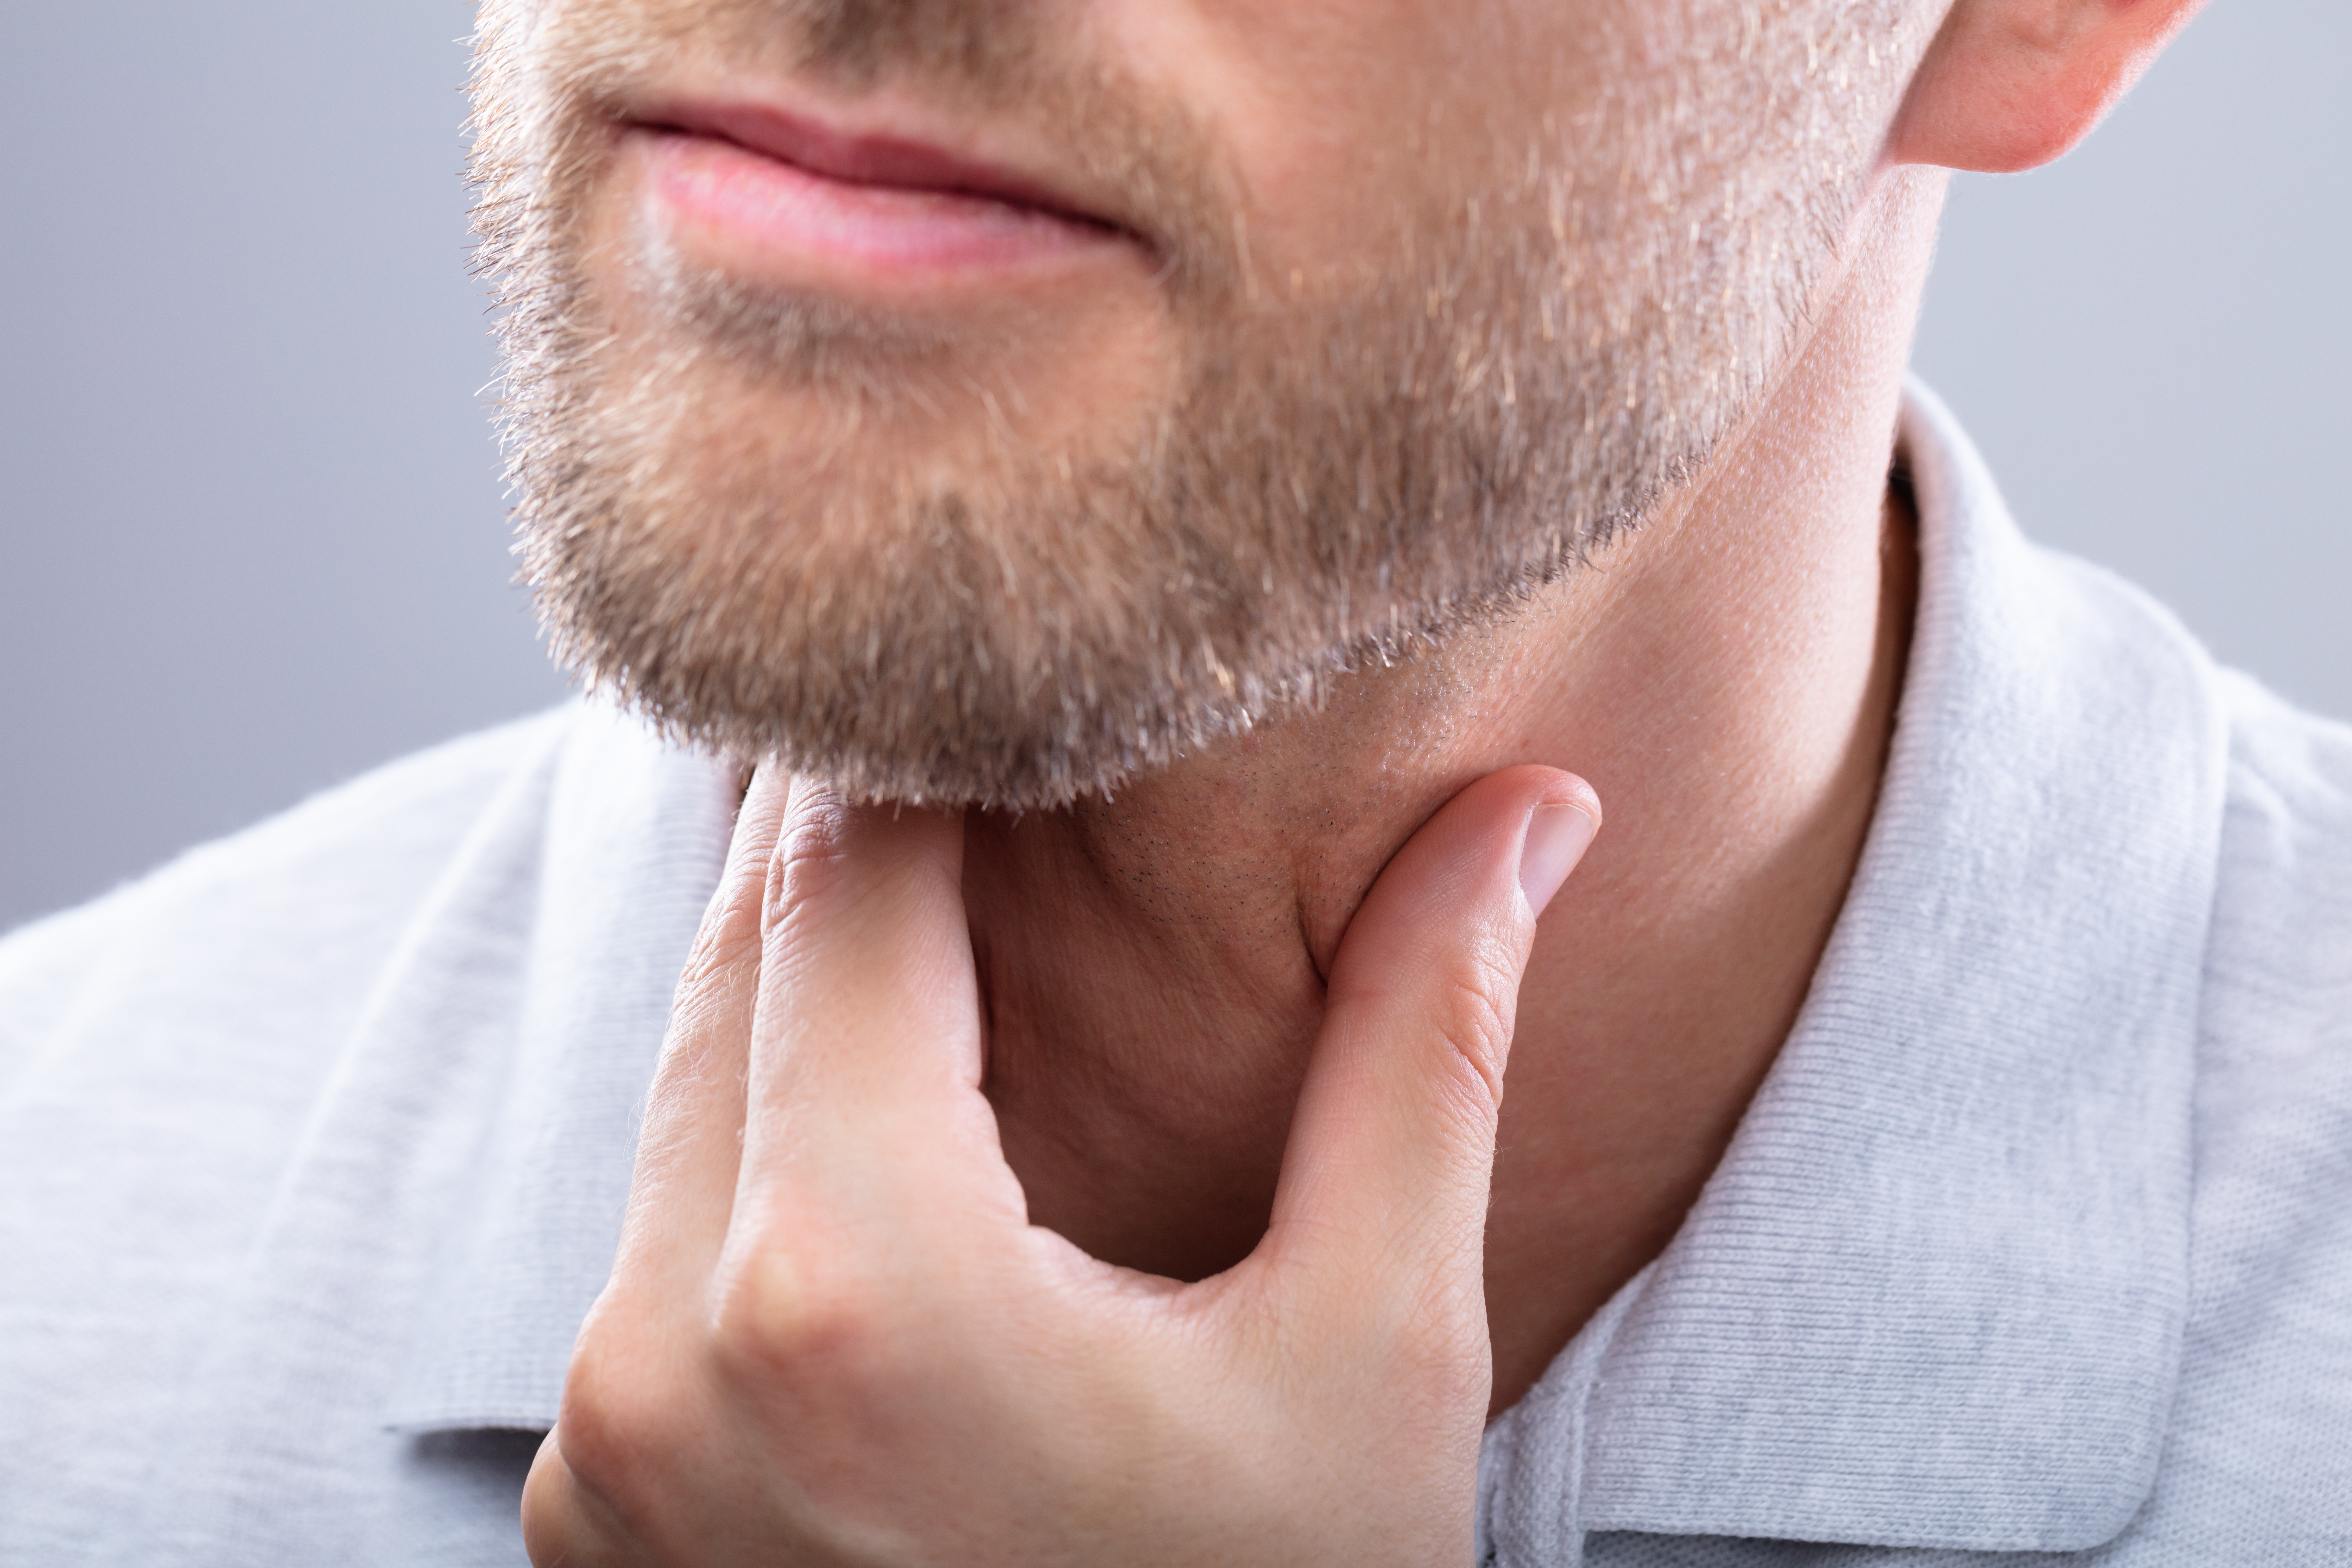 How Common Is a Sore Throat from Esophageal Cancer?